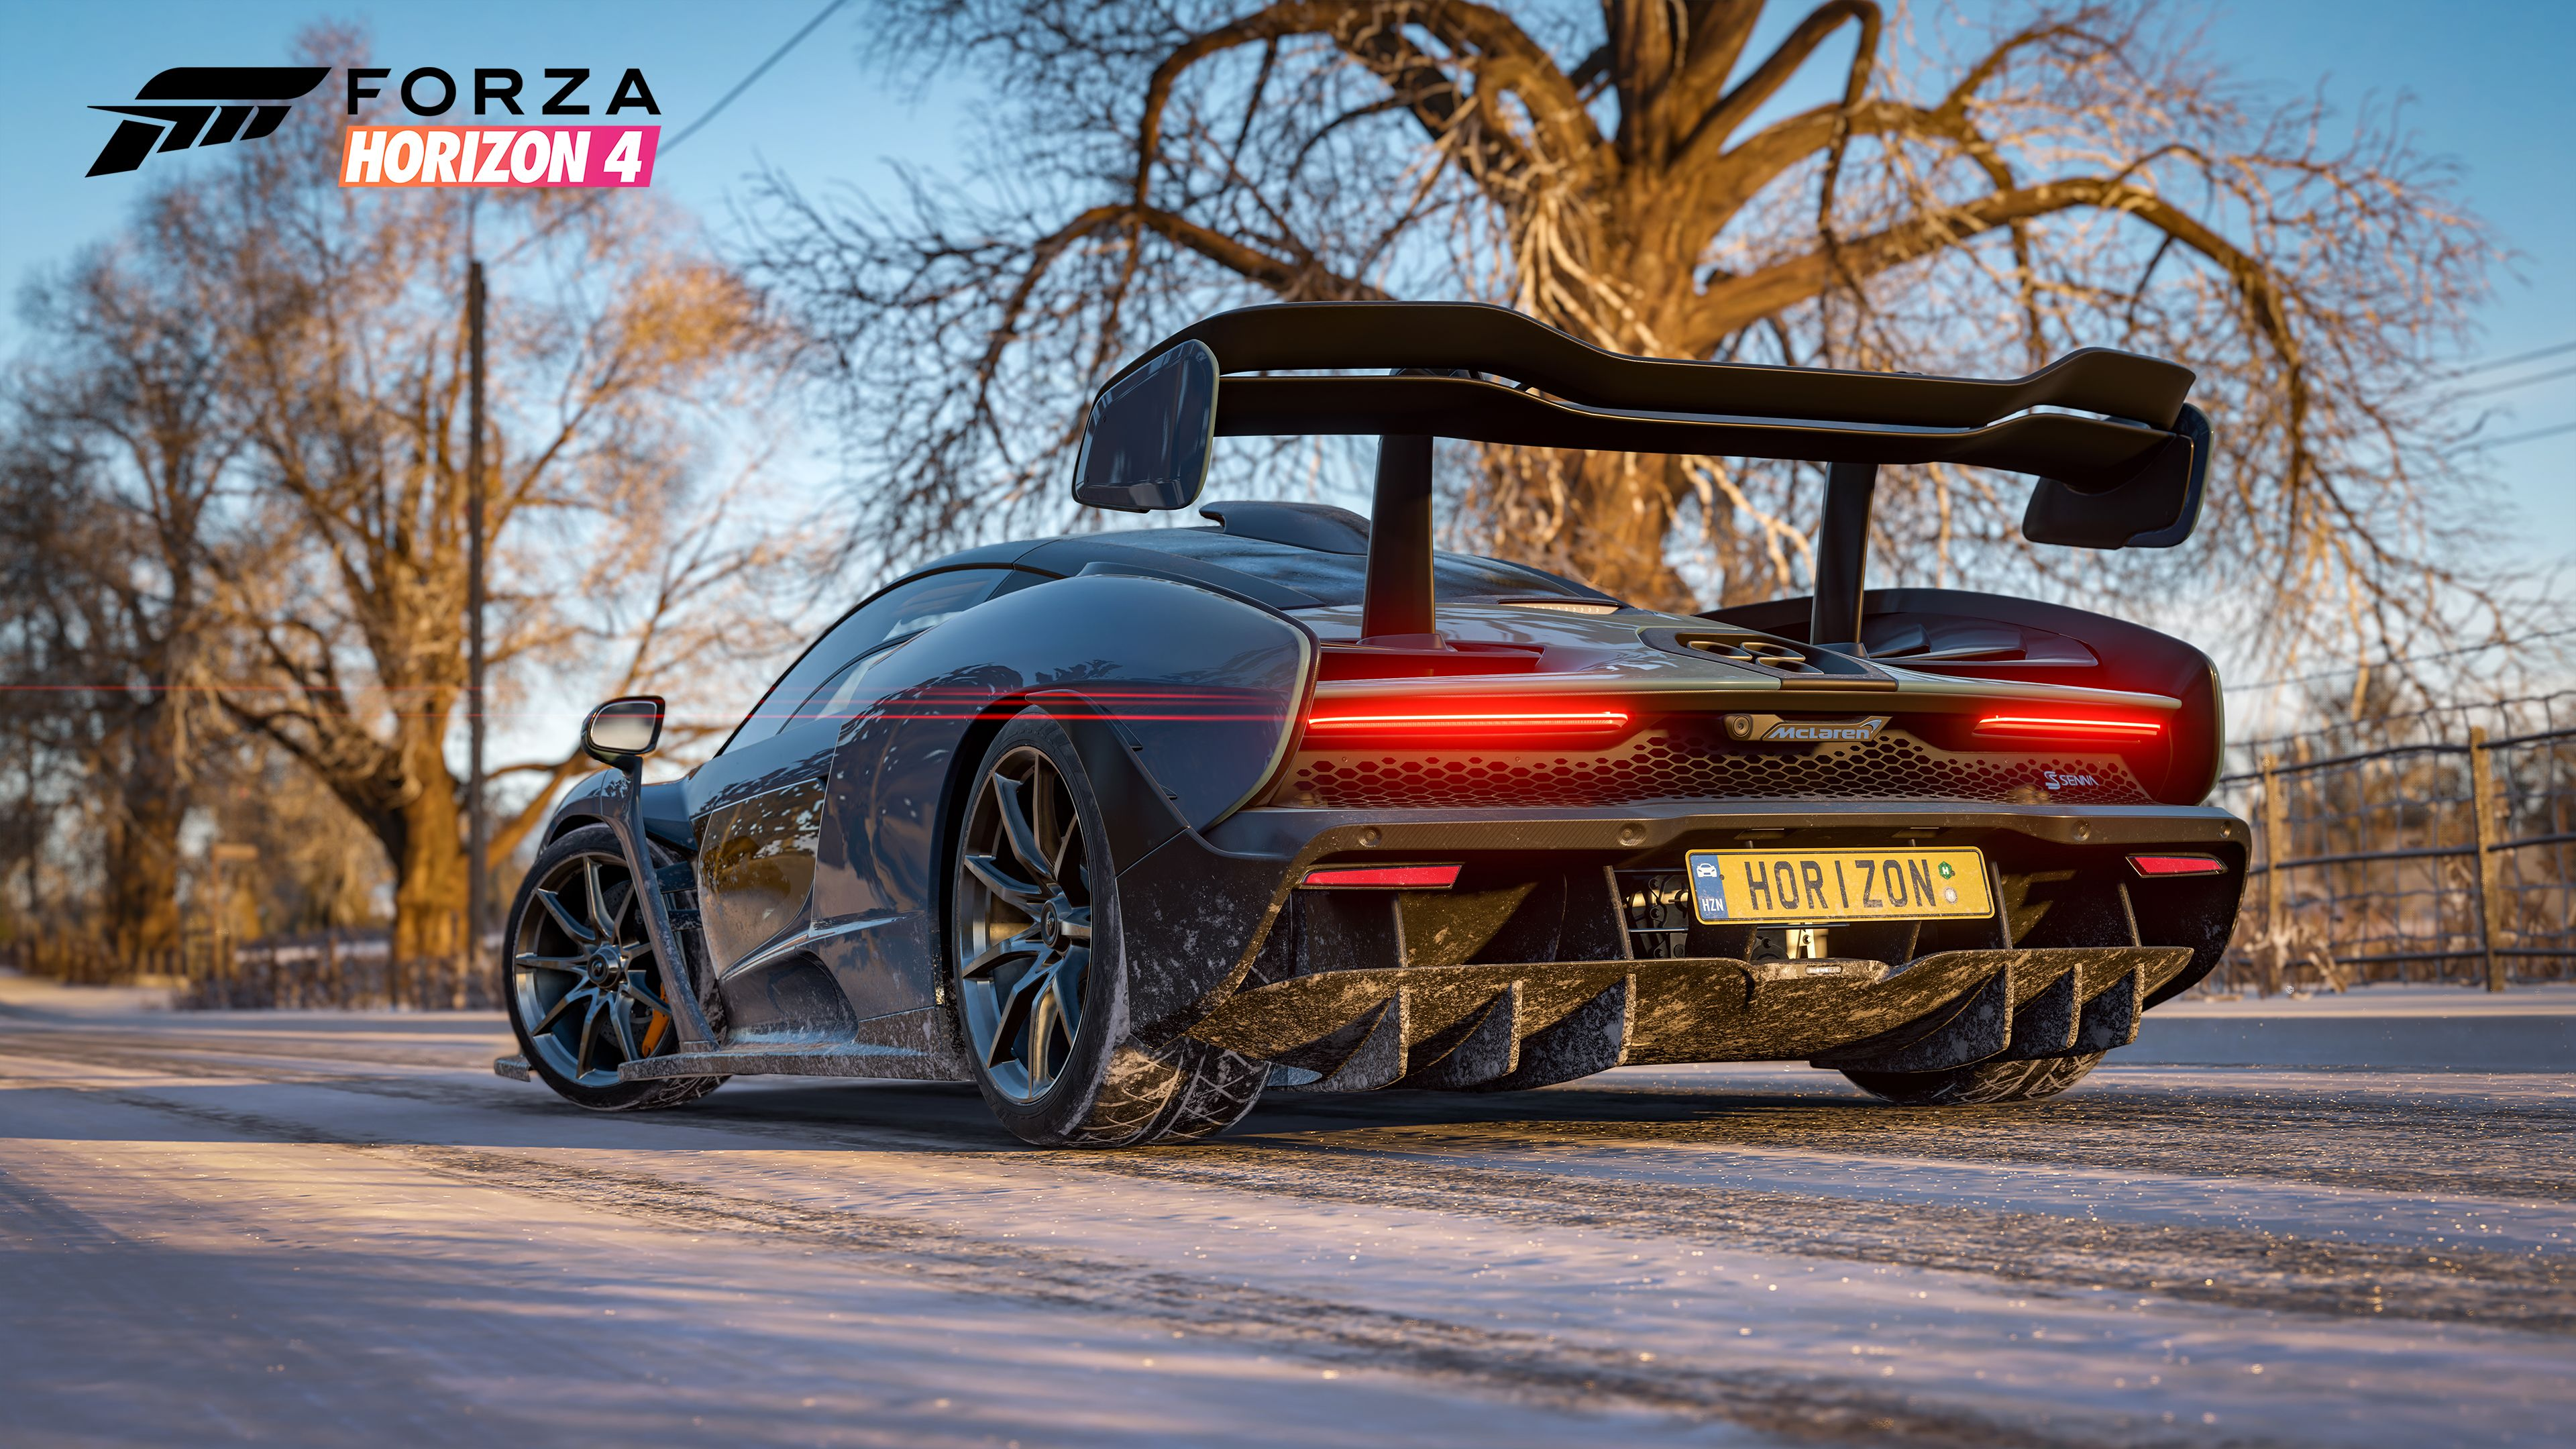 forza horizon 4 ultimate edition windows 10 xbox one. Black Bedroom Furniture Sets. Home Design Ideas